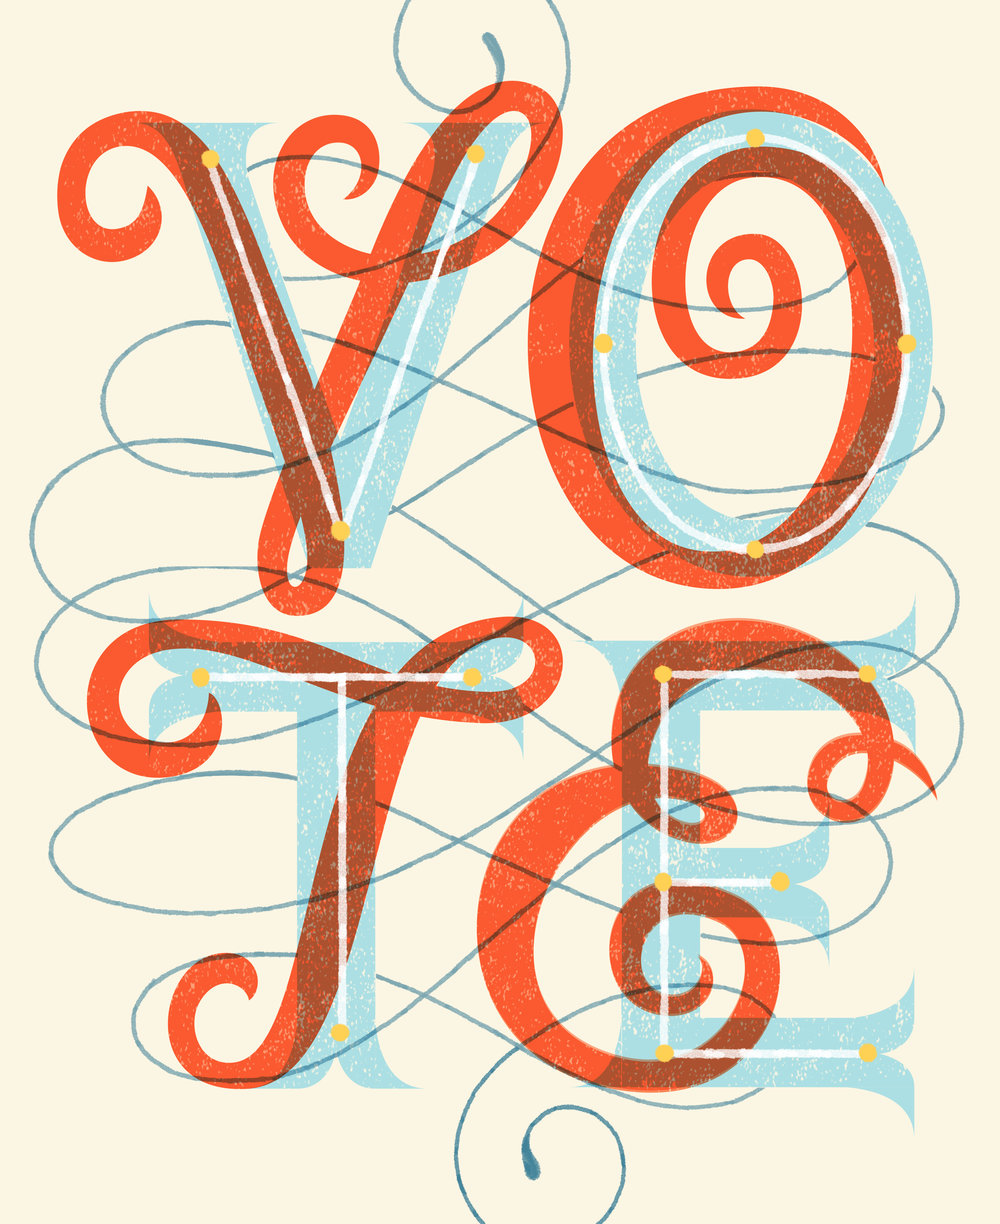 Letters Are Lovely | Let's Vote!